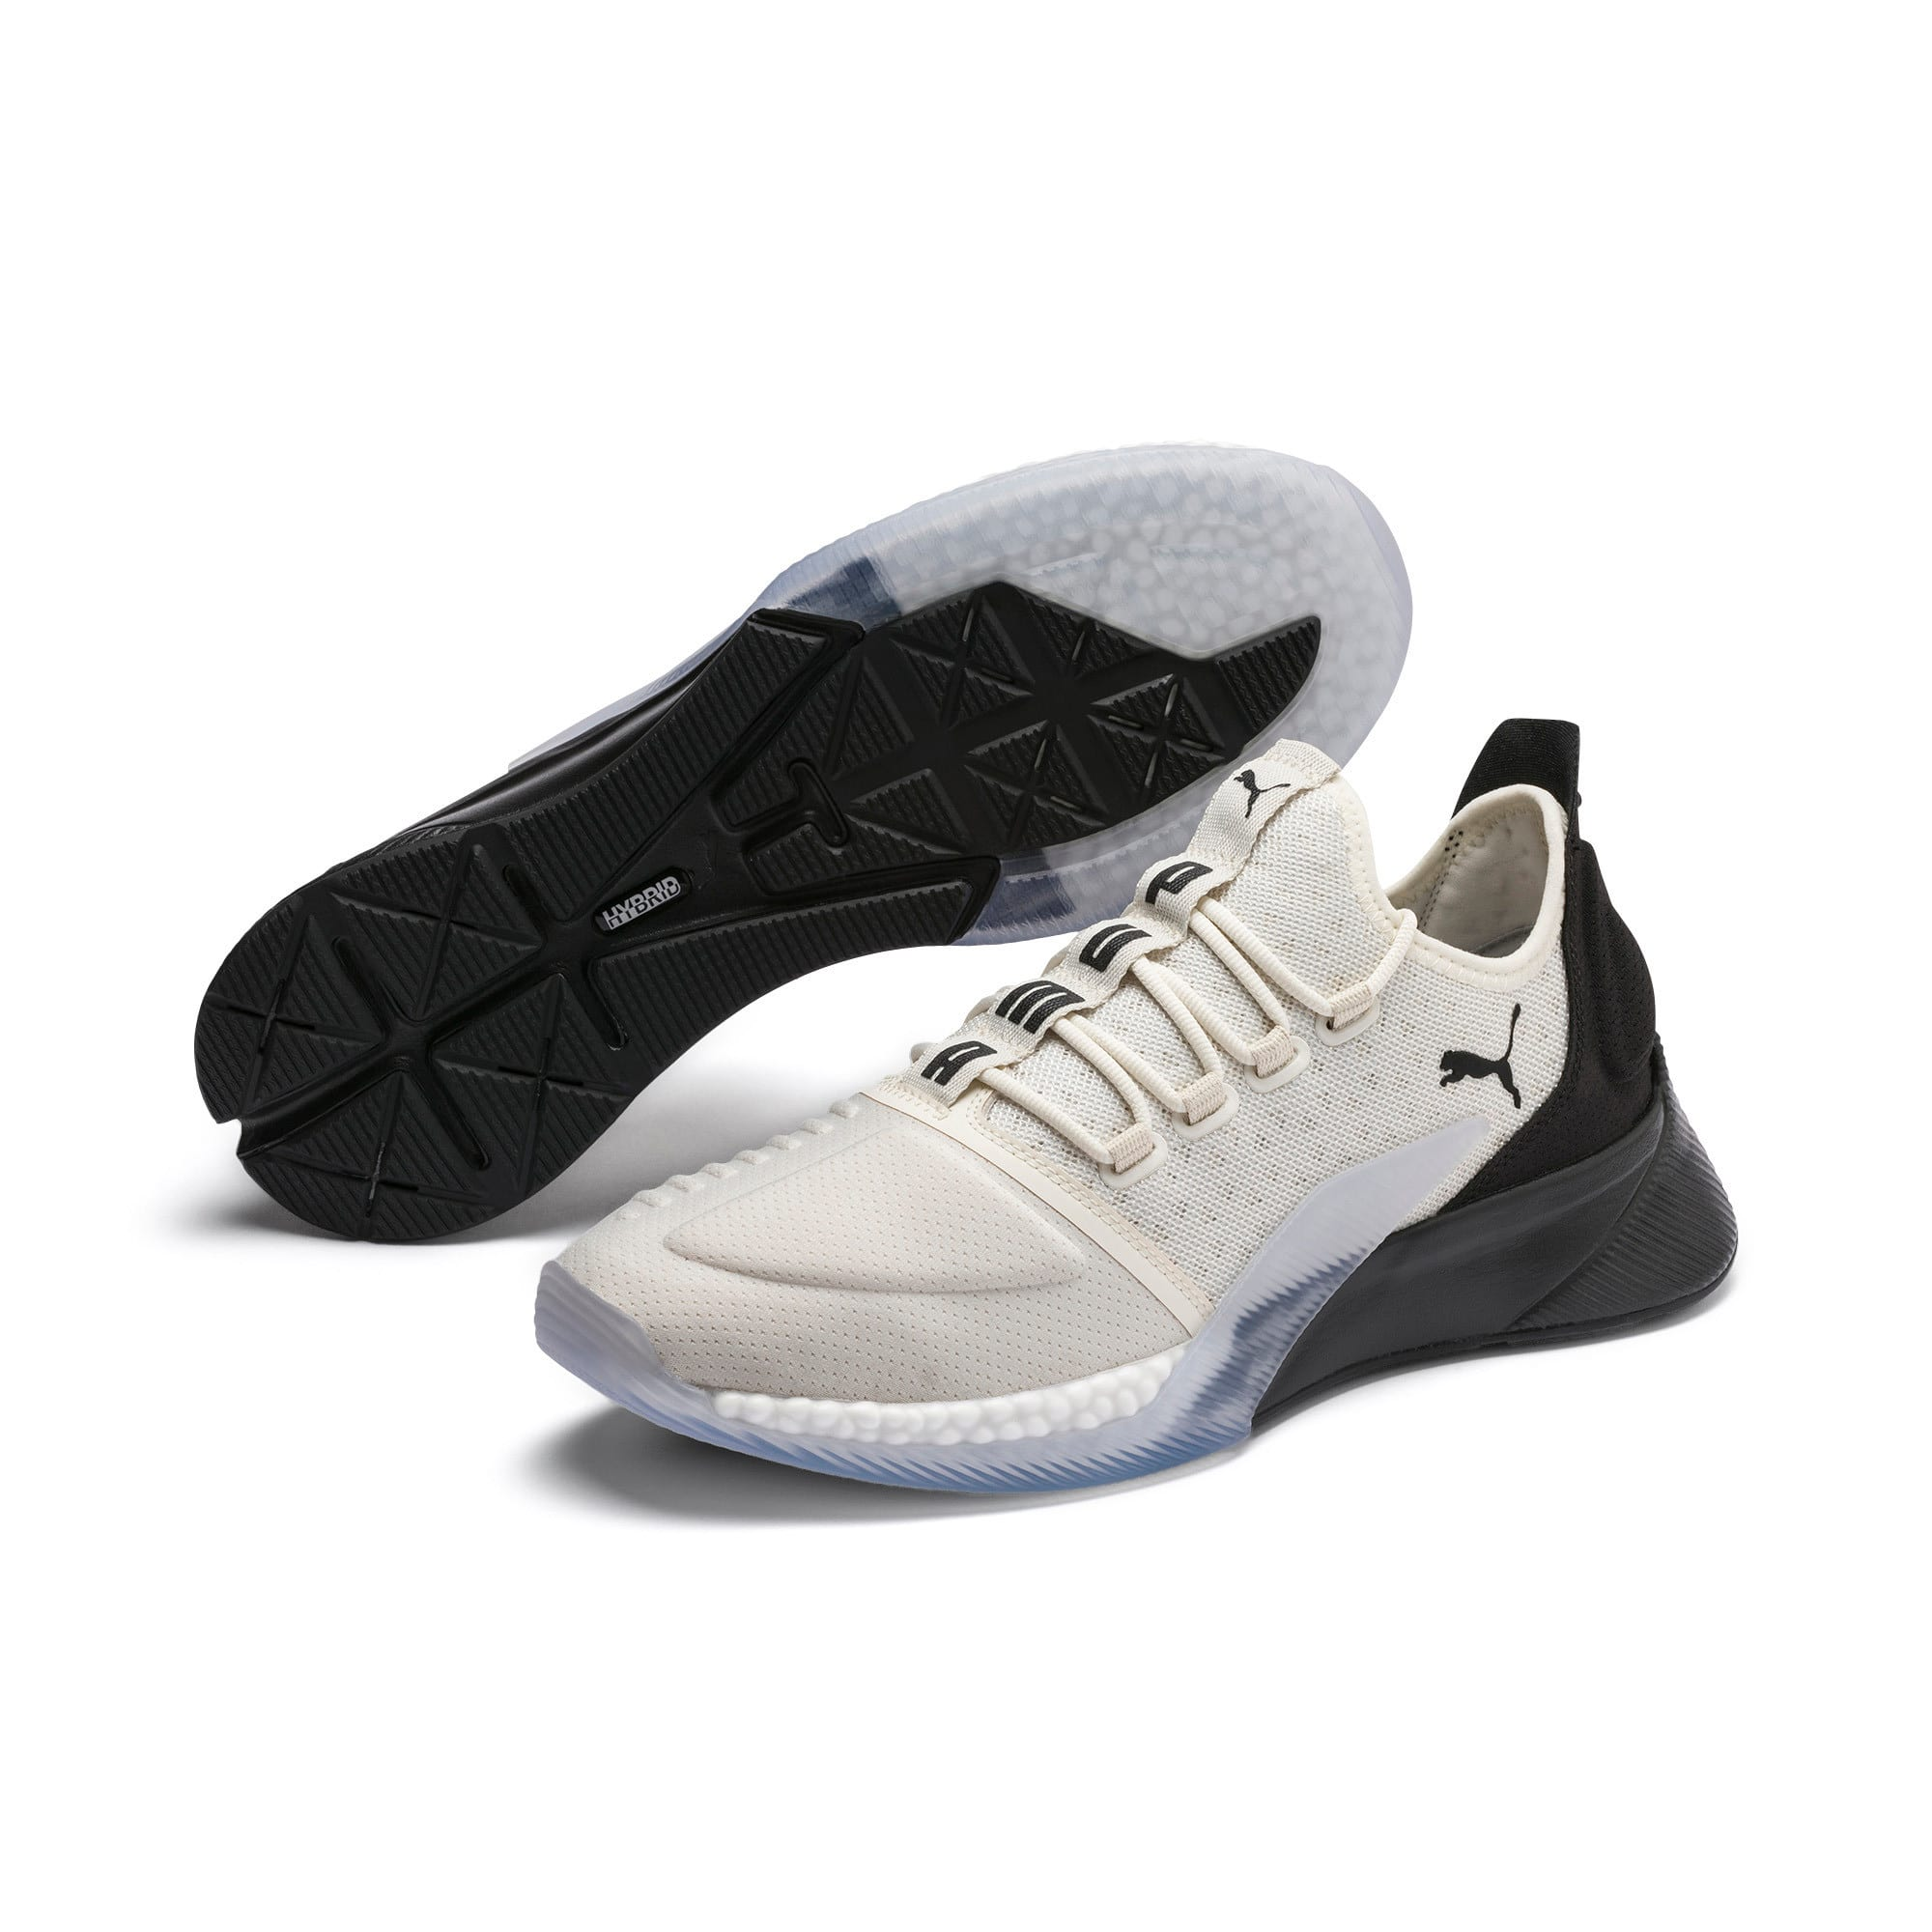 Thumbnail 2 of Xcelerator Running Shoes, Whisper White-Puma Black, medium